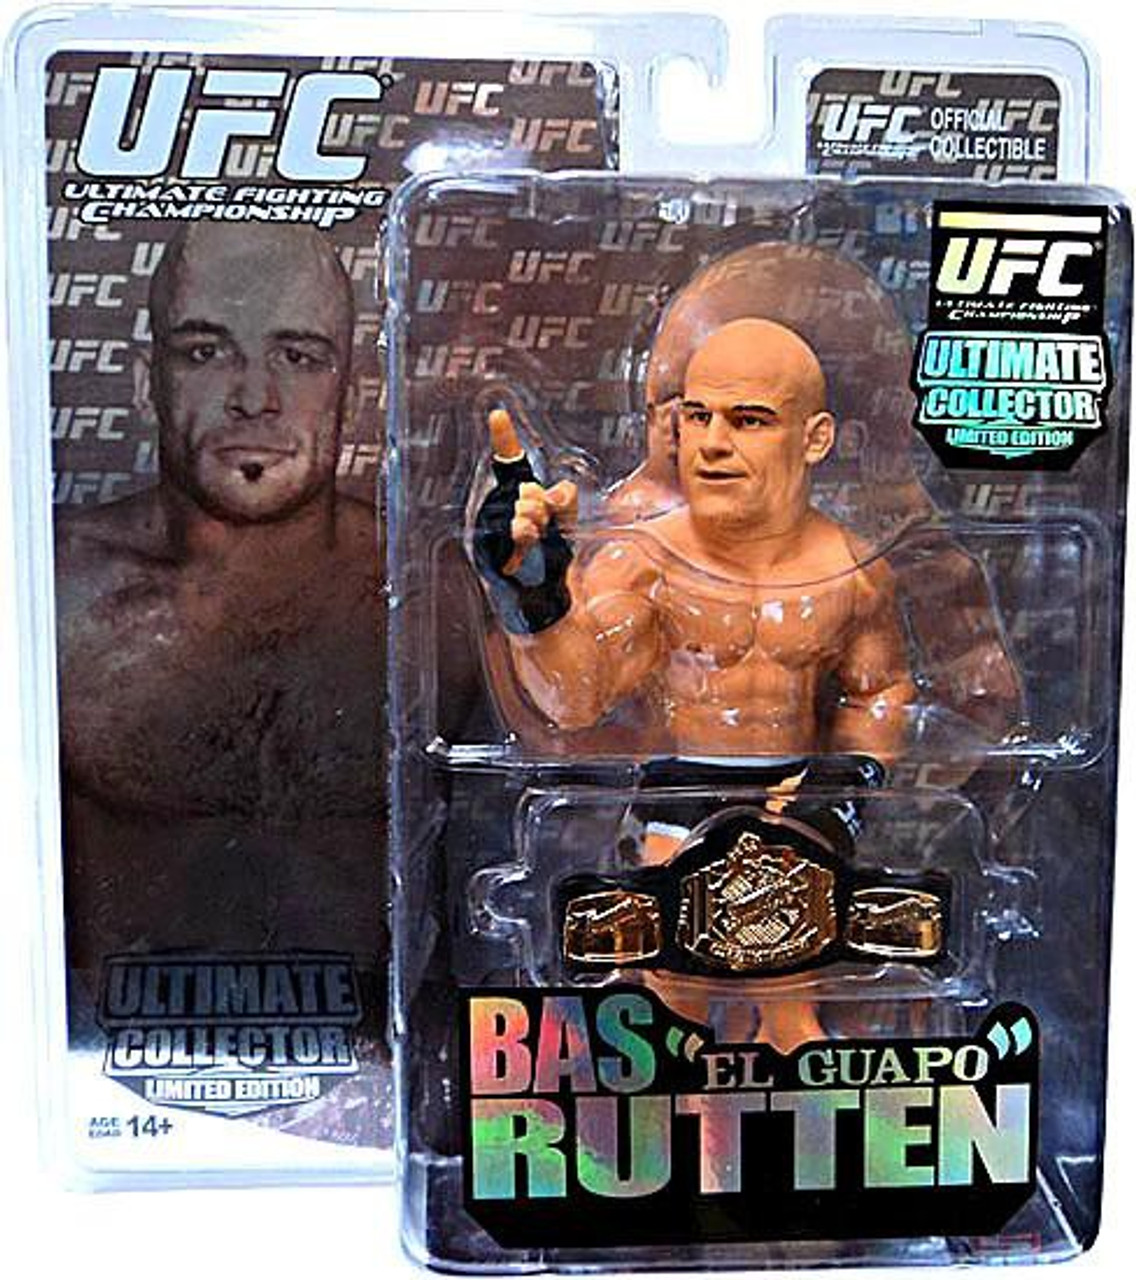 """UFC Ultimate Collector Series 6 Bas """"El Guapo"""" Rutten Action Figure [Limited Edition]"""